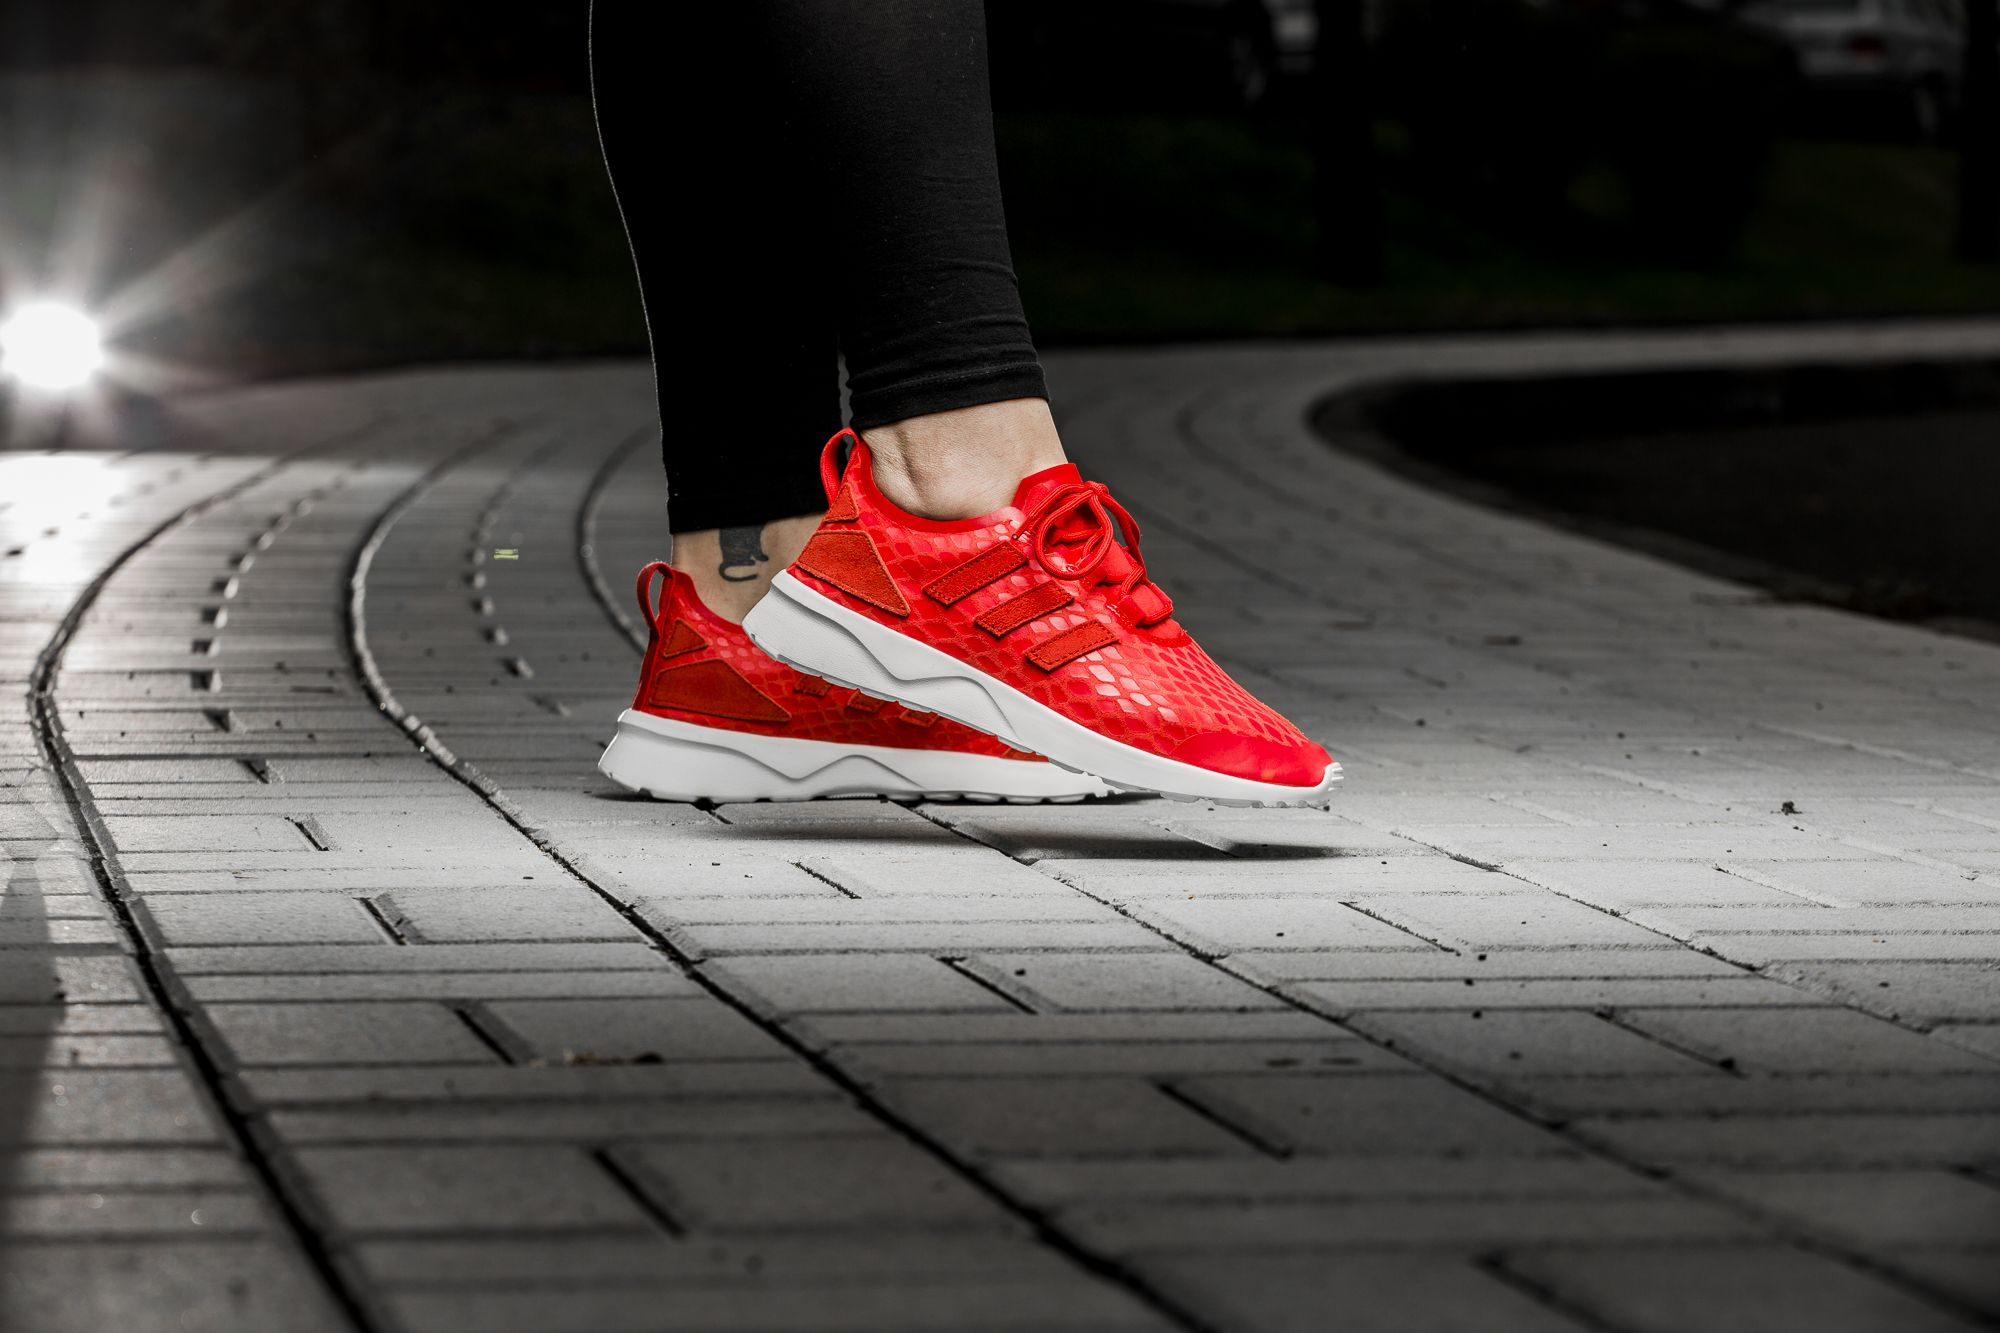 Zx GirlsThe Adidas Available Adv Originals Flux Verve Si lJTKF1c3